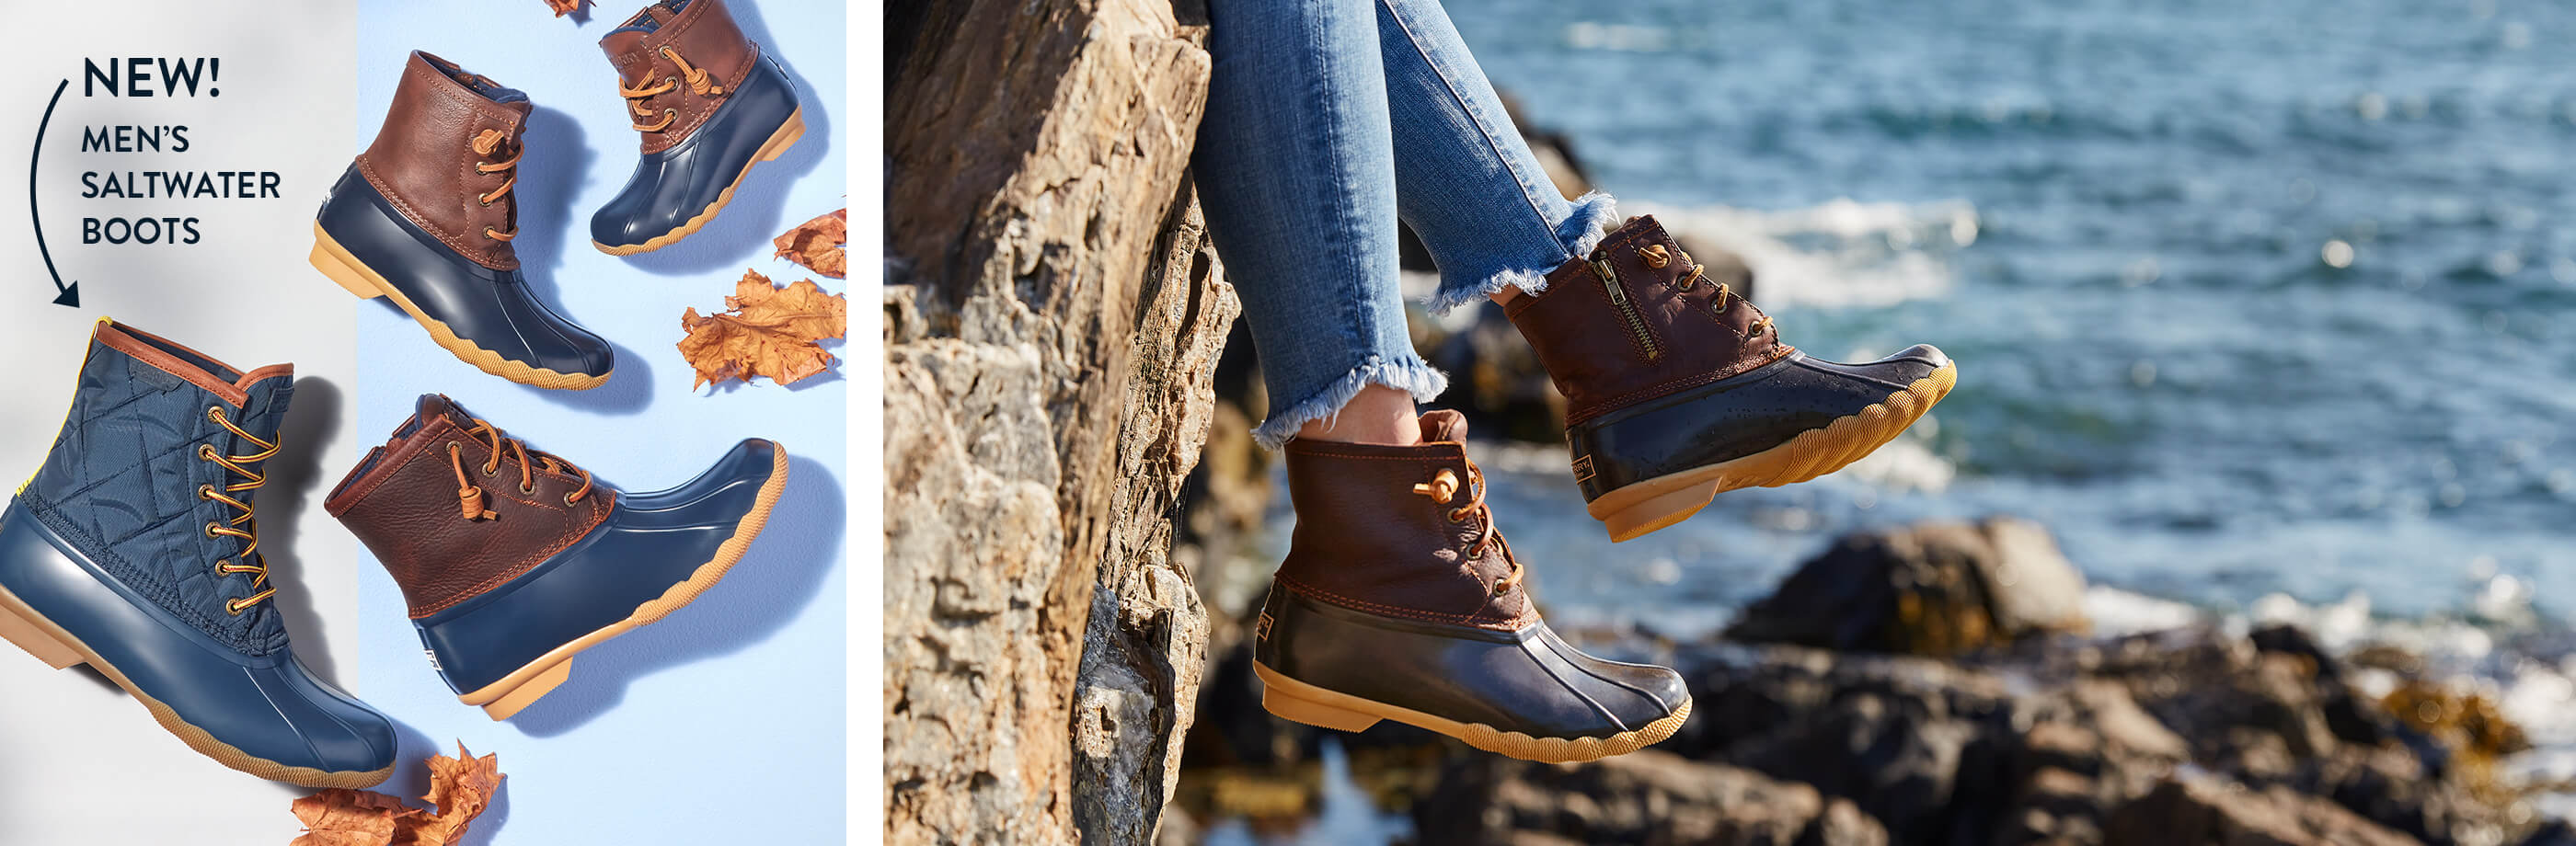 NEW! Men's Saltwater Boots.